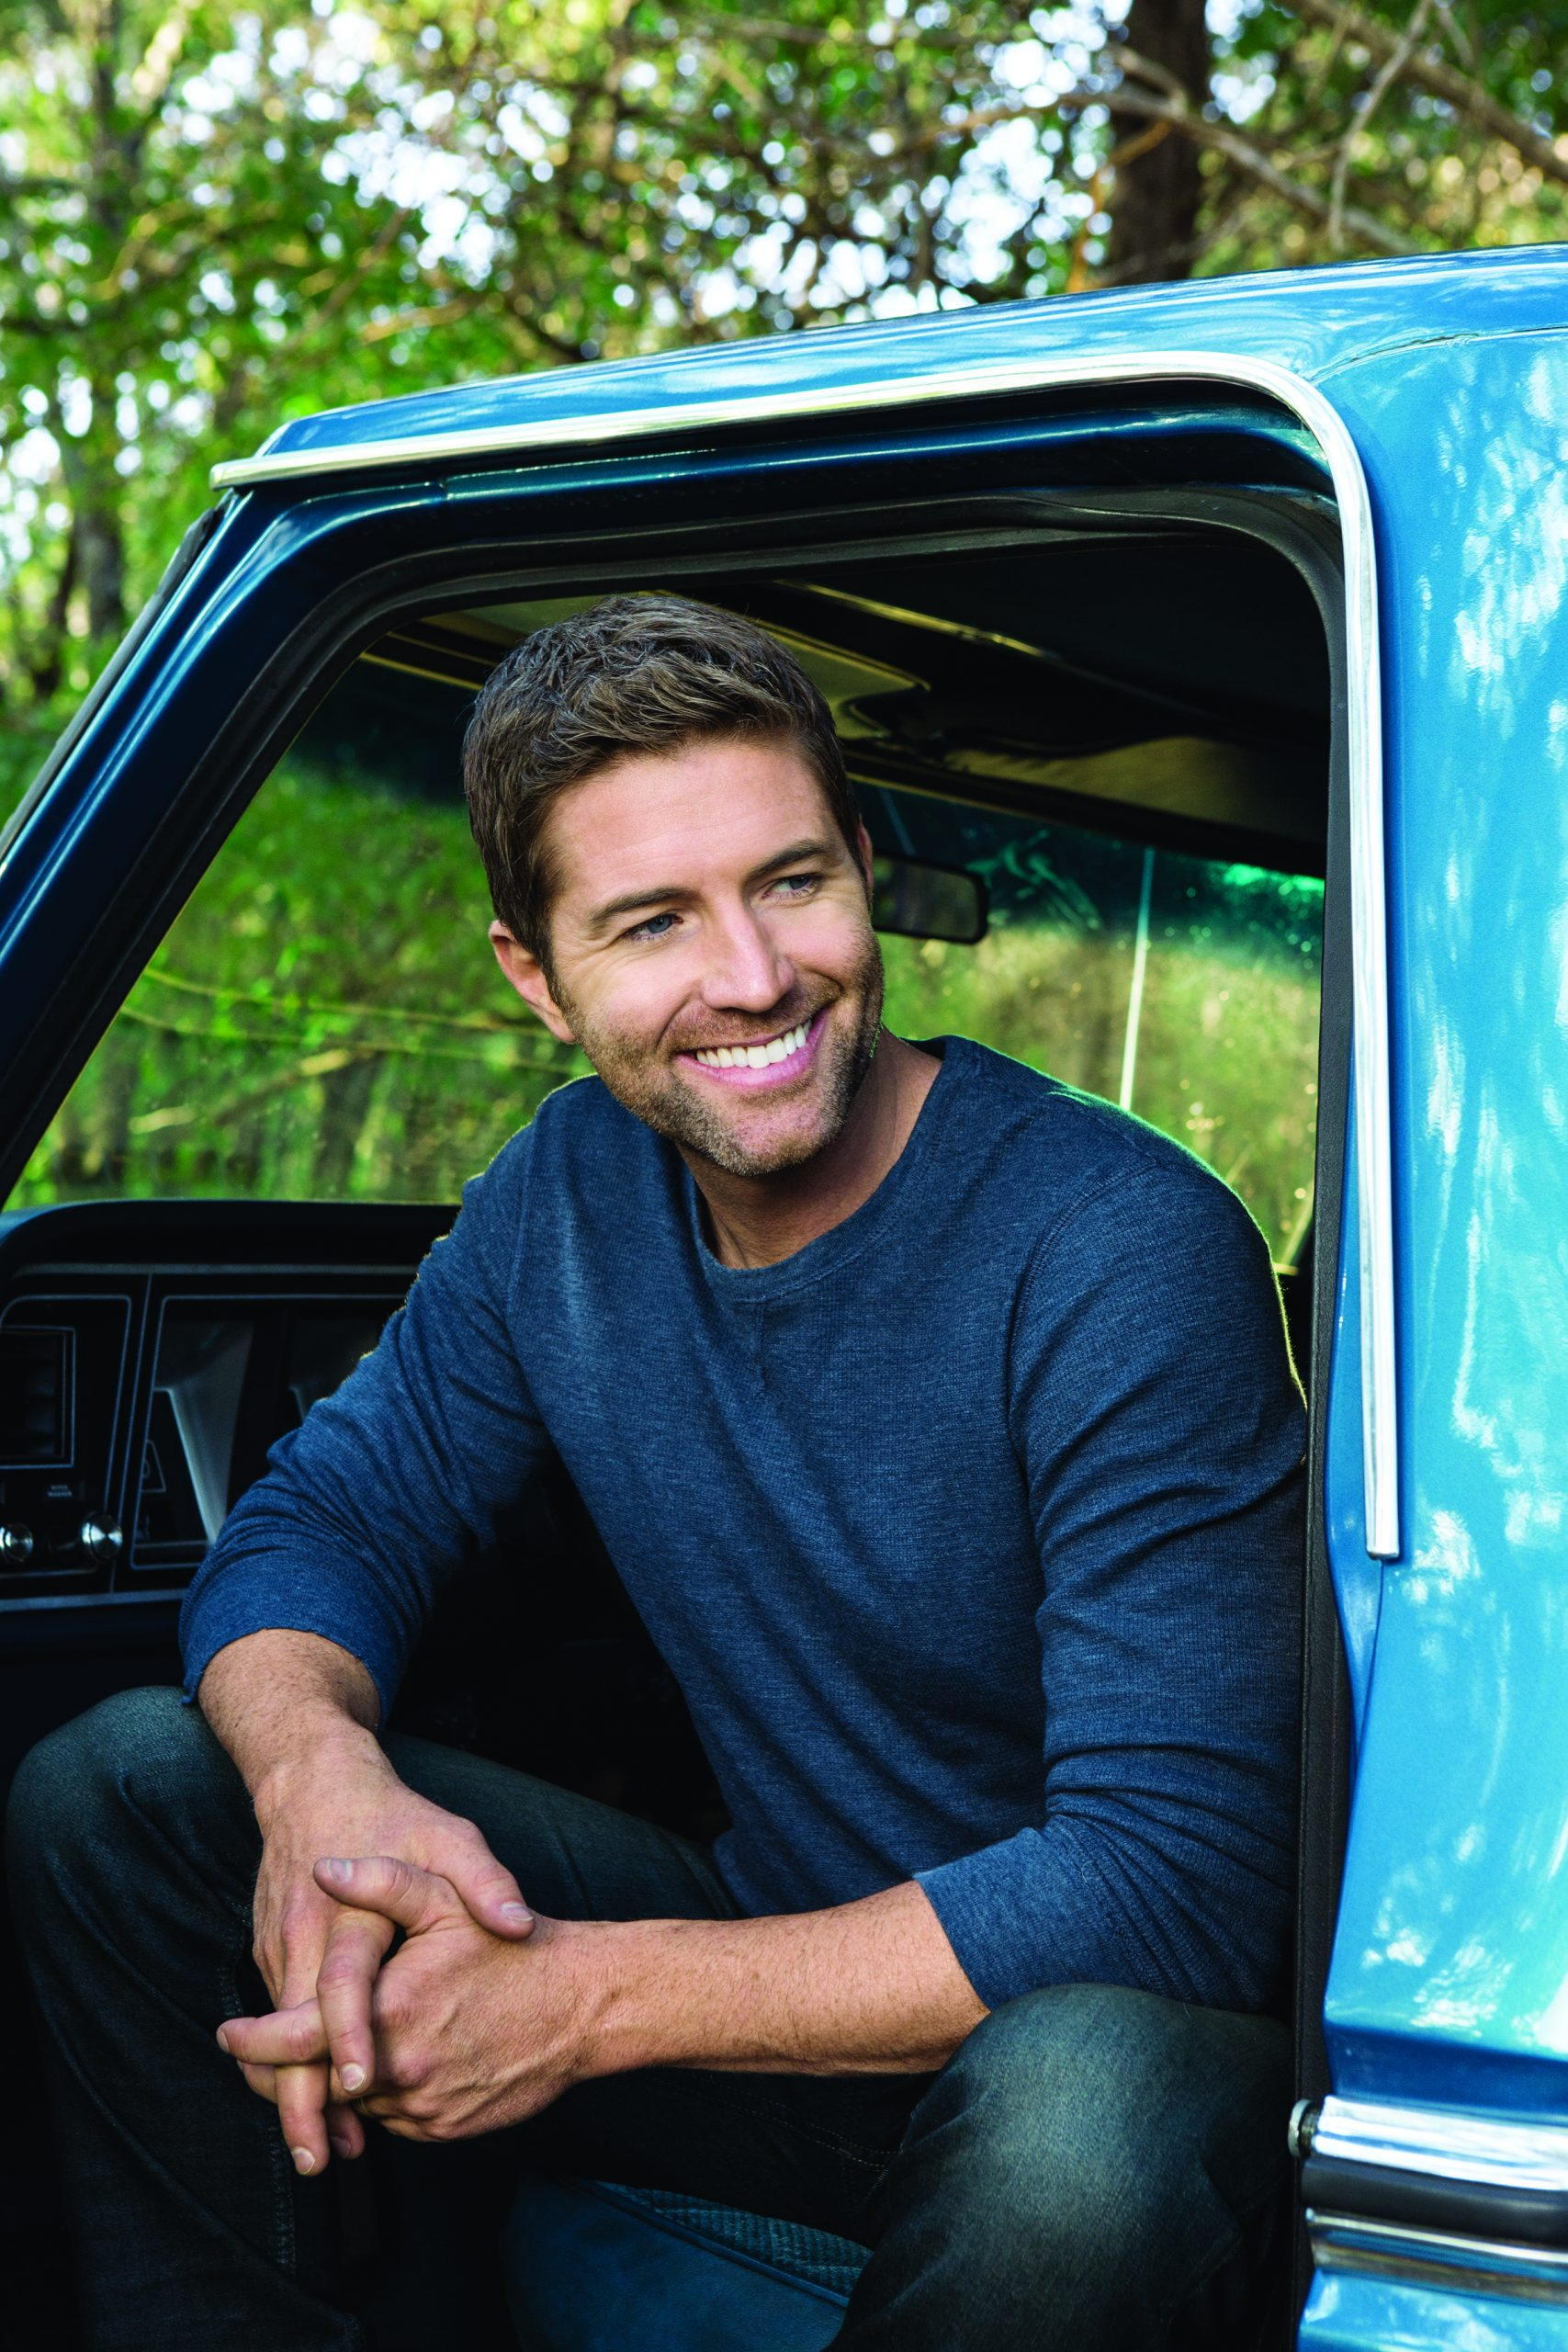 Josh Turner & Chase Bryant Will Play The Back Road Music Festival